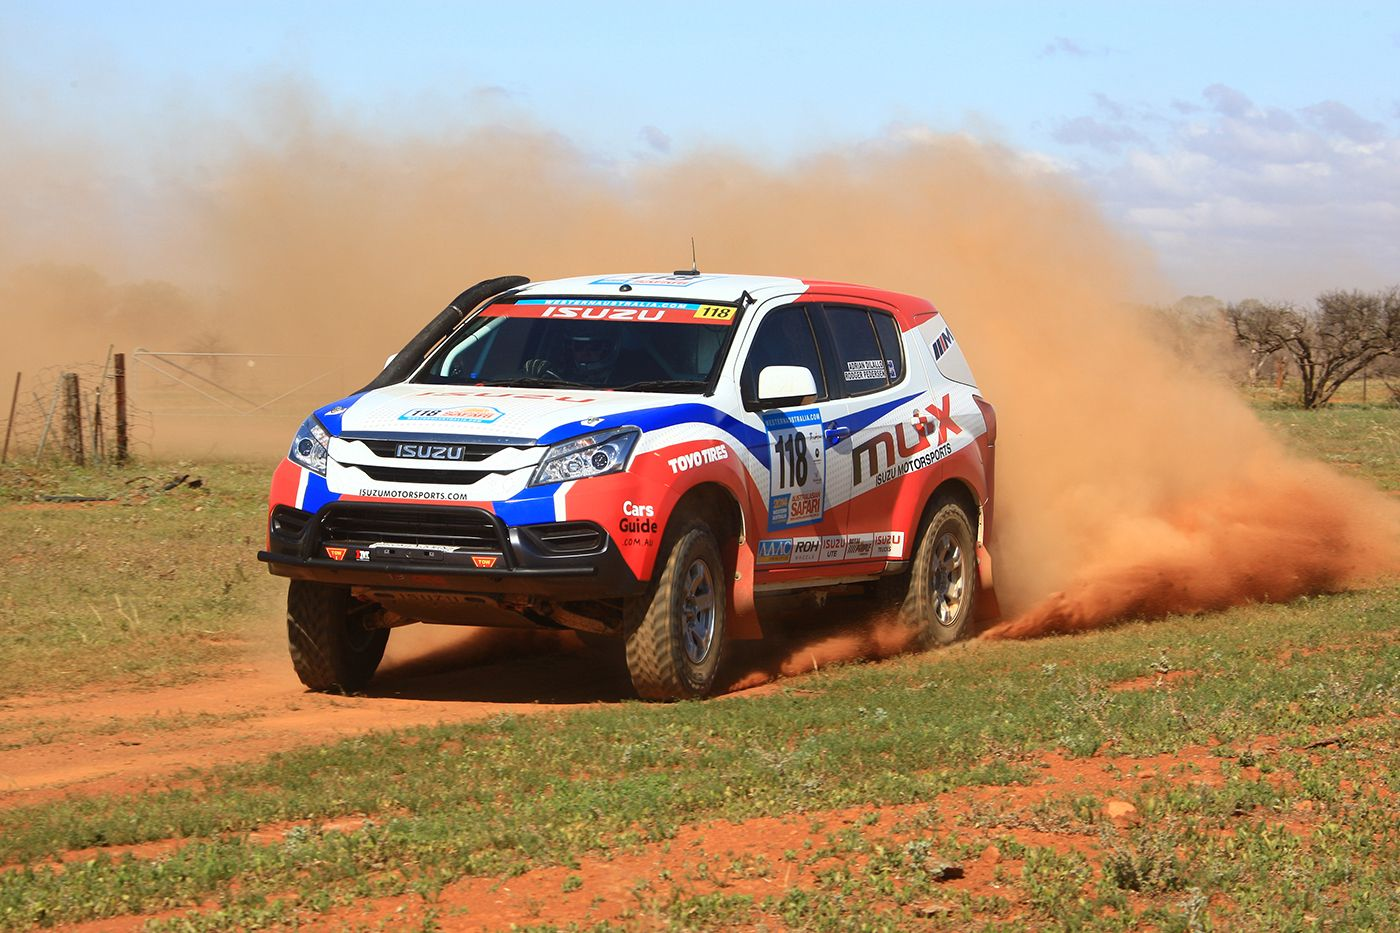 Isuzu Mu X Engineered In Sydney For Dakar Rally In 2015 With